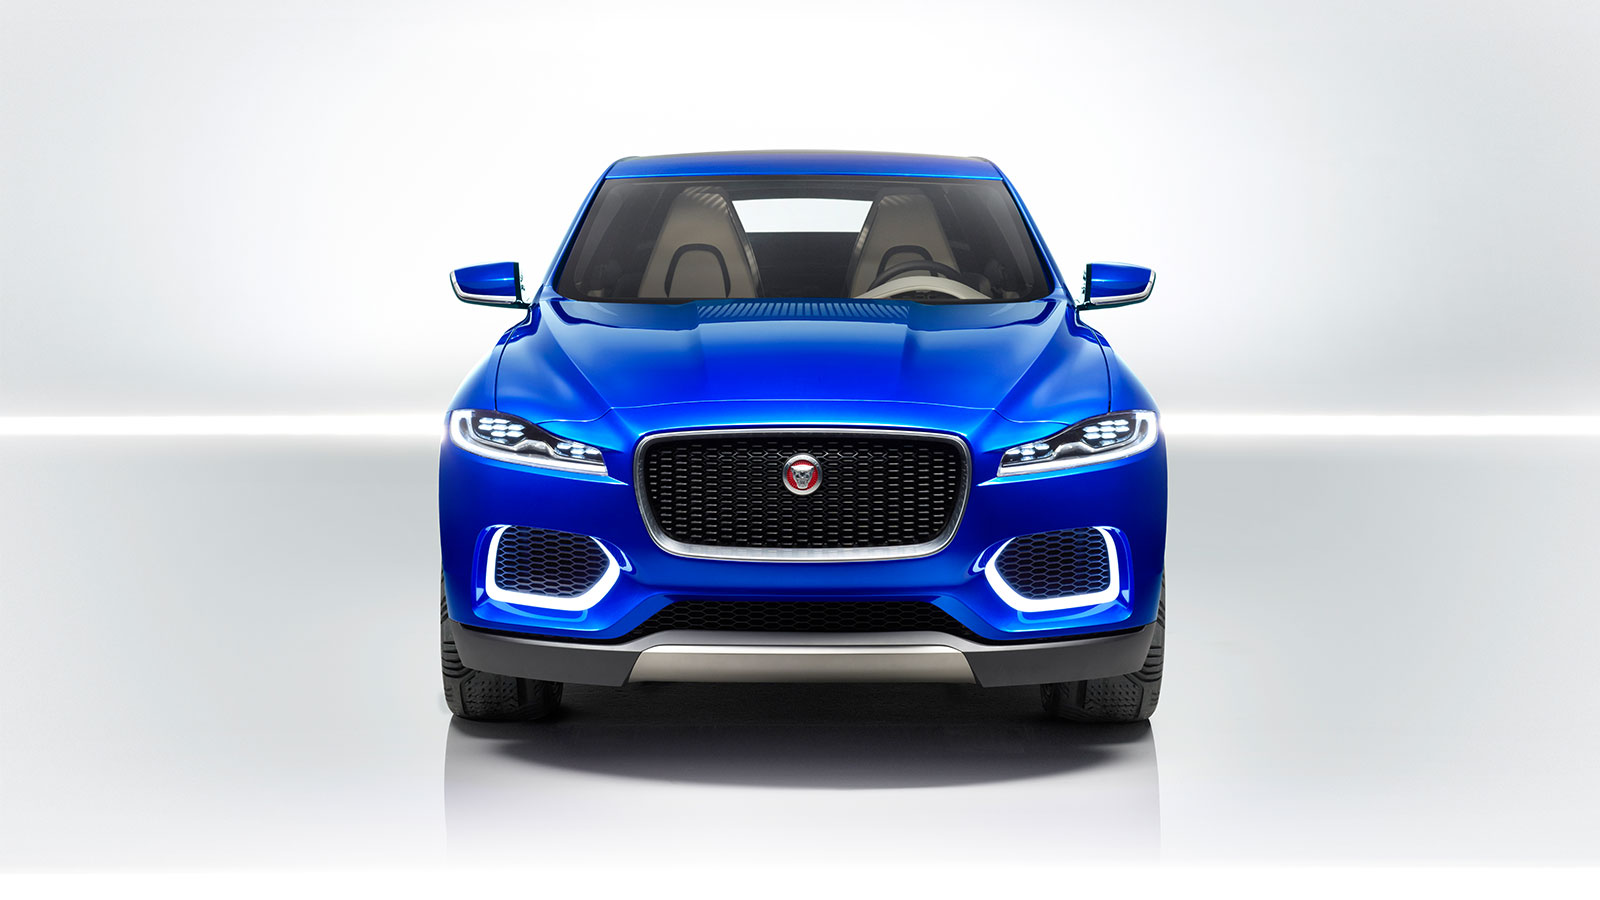 Front shot of a Jaguar C-X17 in blue in a studio.